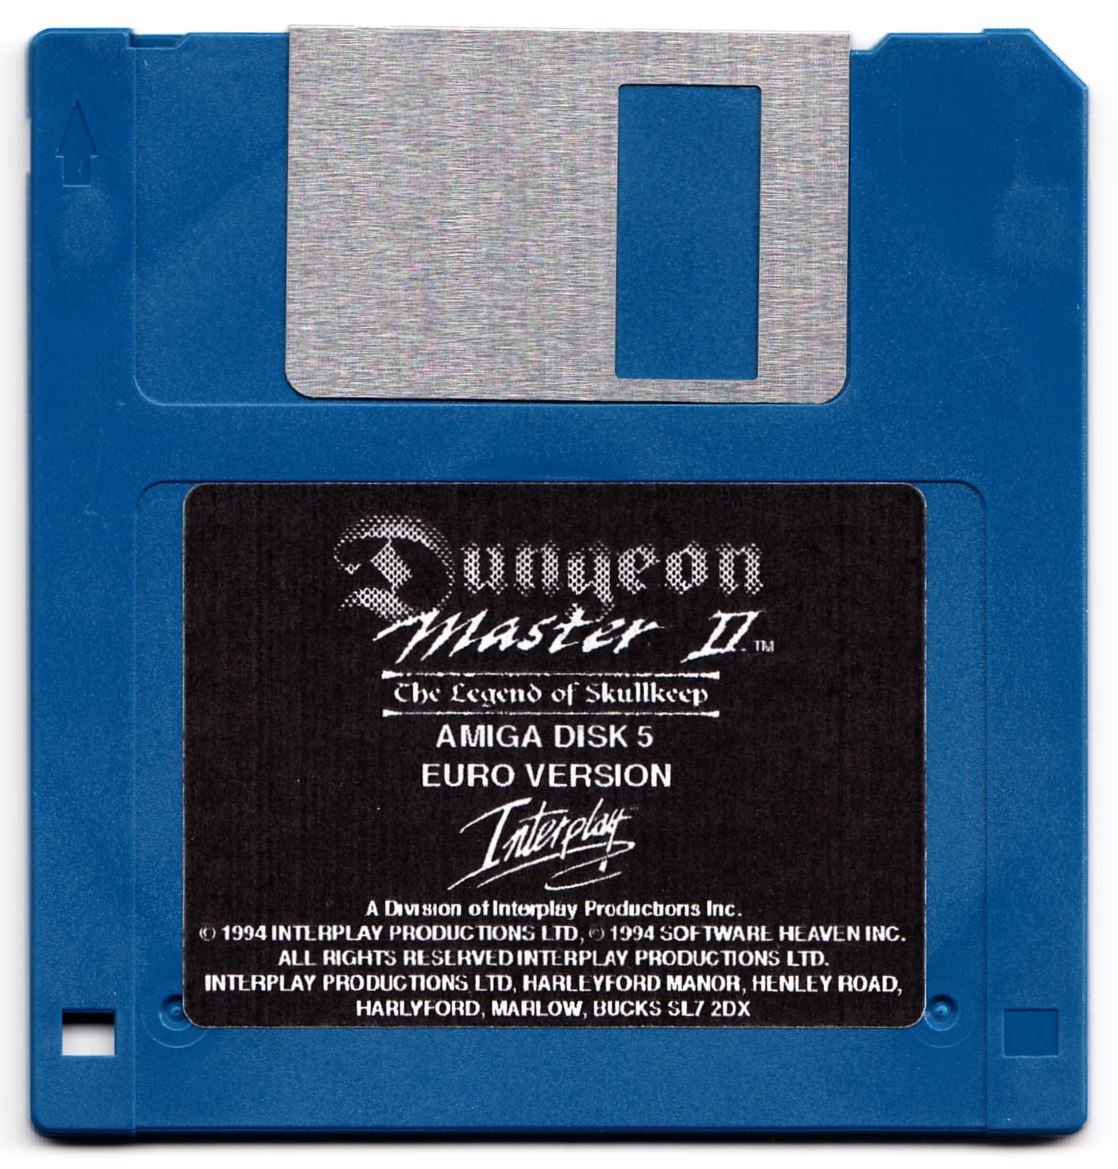 Game - Dungeon Master II - UK - Amiga Alternate - Disk 5 - Front - Scan